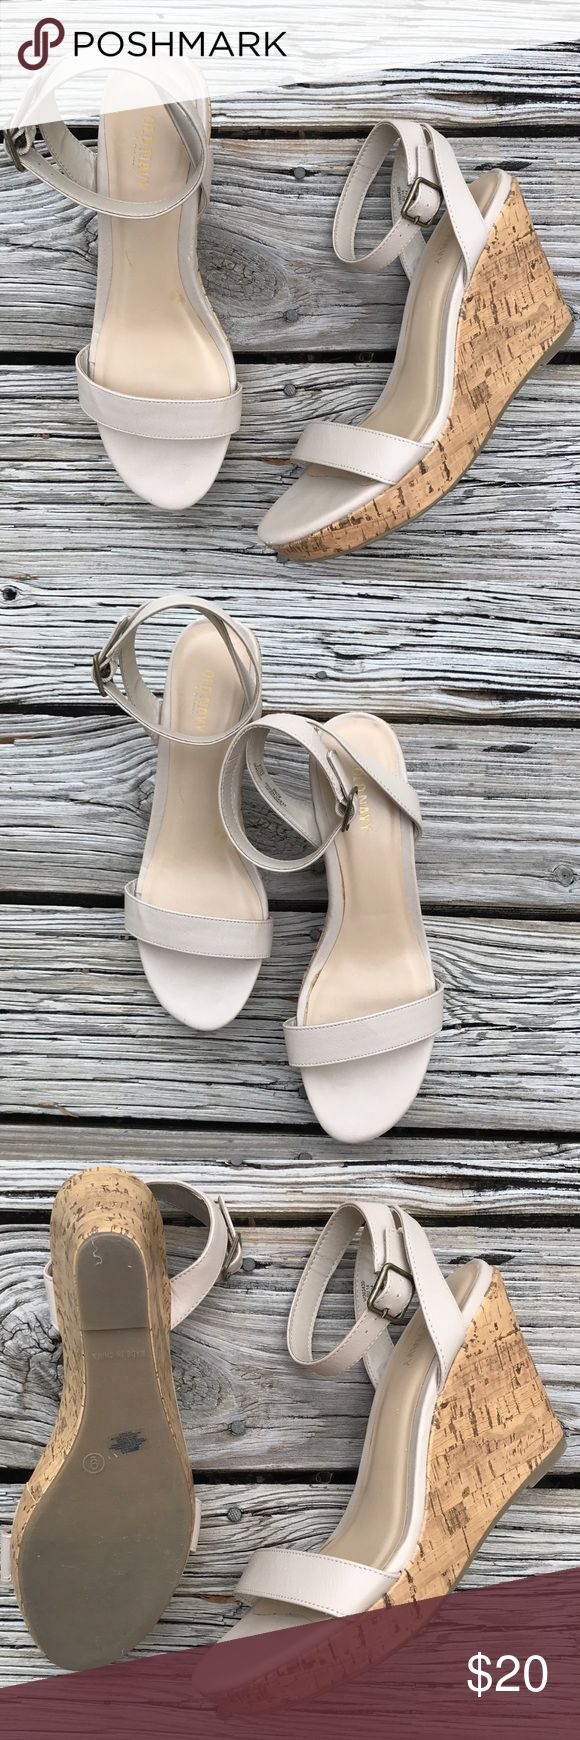 Cream Wedge with Ankle Strap! Worn literally once! Super comfy, just enough to give you some height but oh so easy to walk in! Half inch platform, with three inch heel ❤✨ Old Navy Shoes Wedges